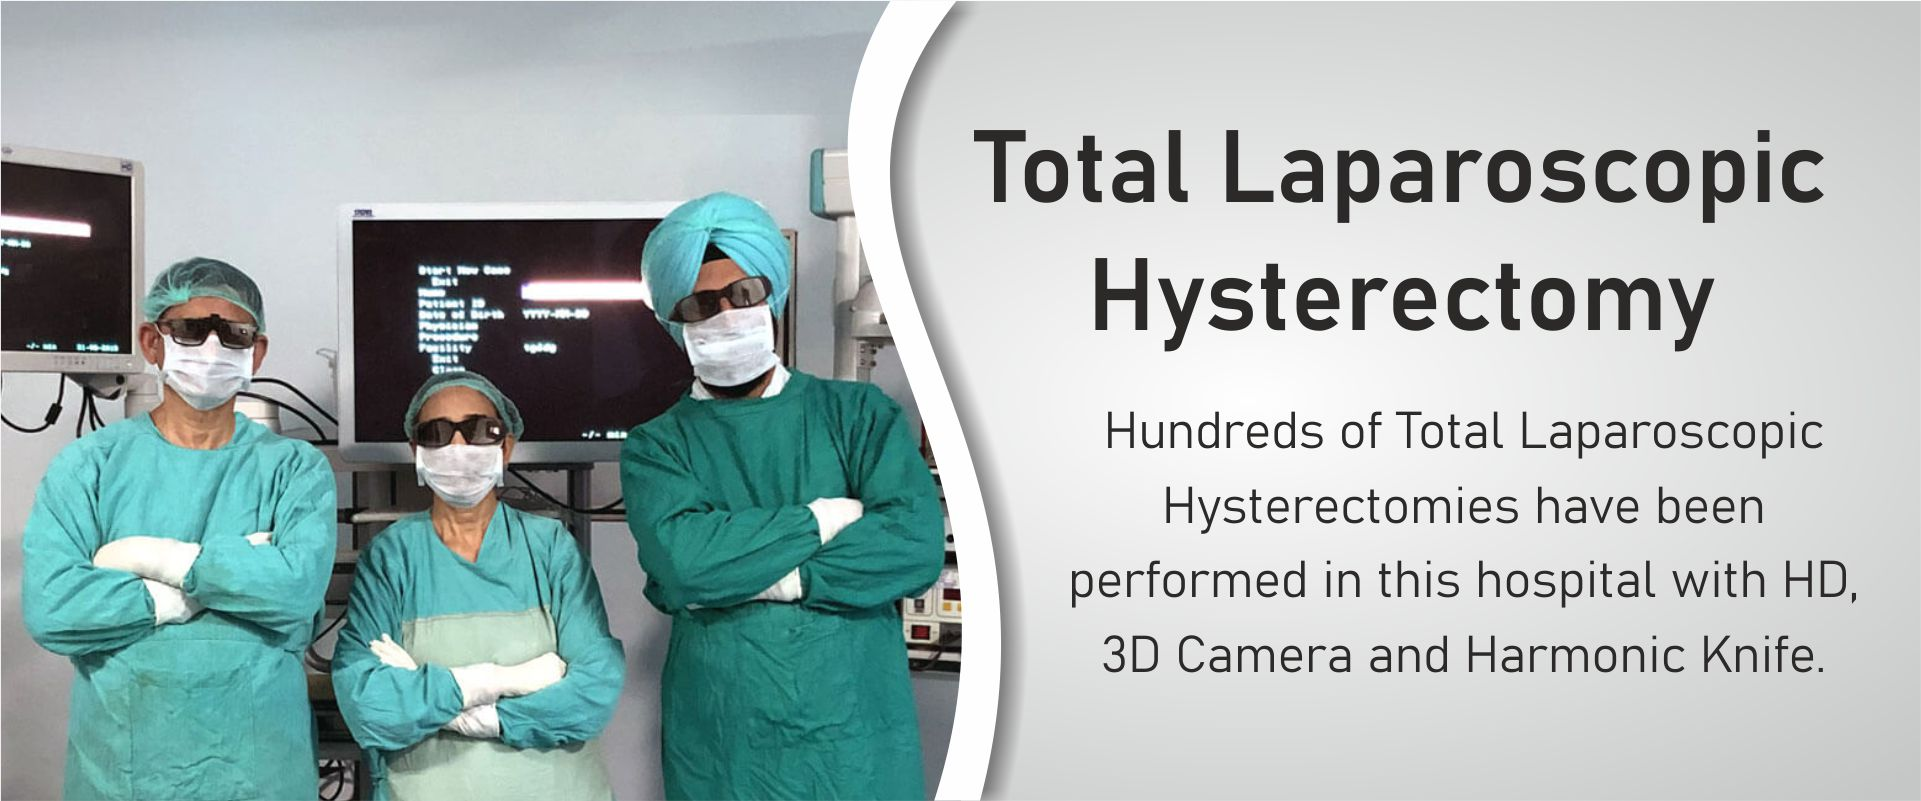 Total Laparoscopic Hysterectomy